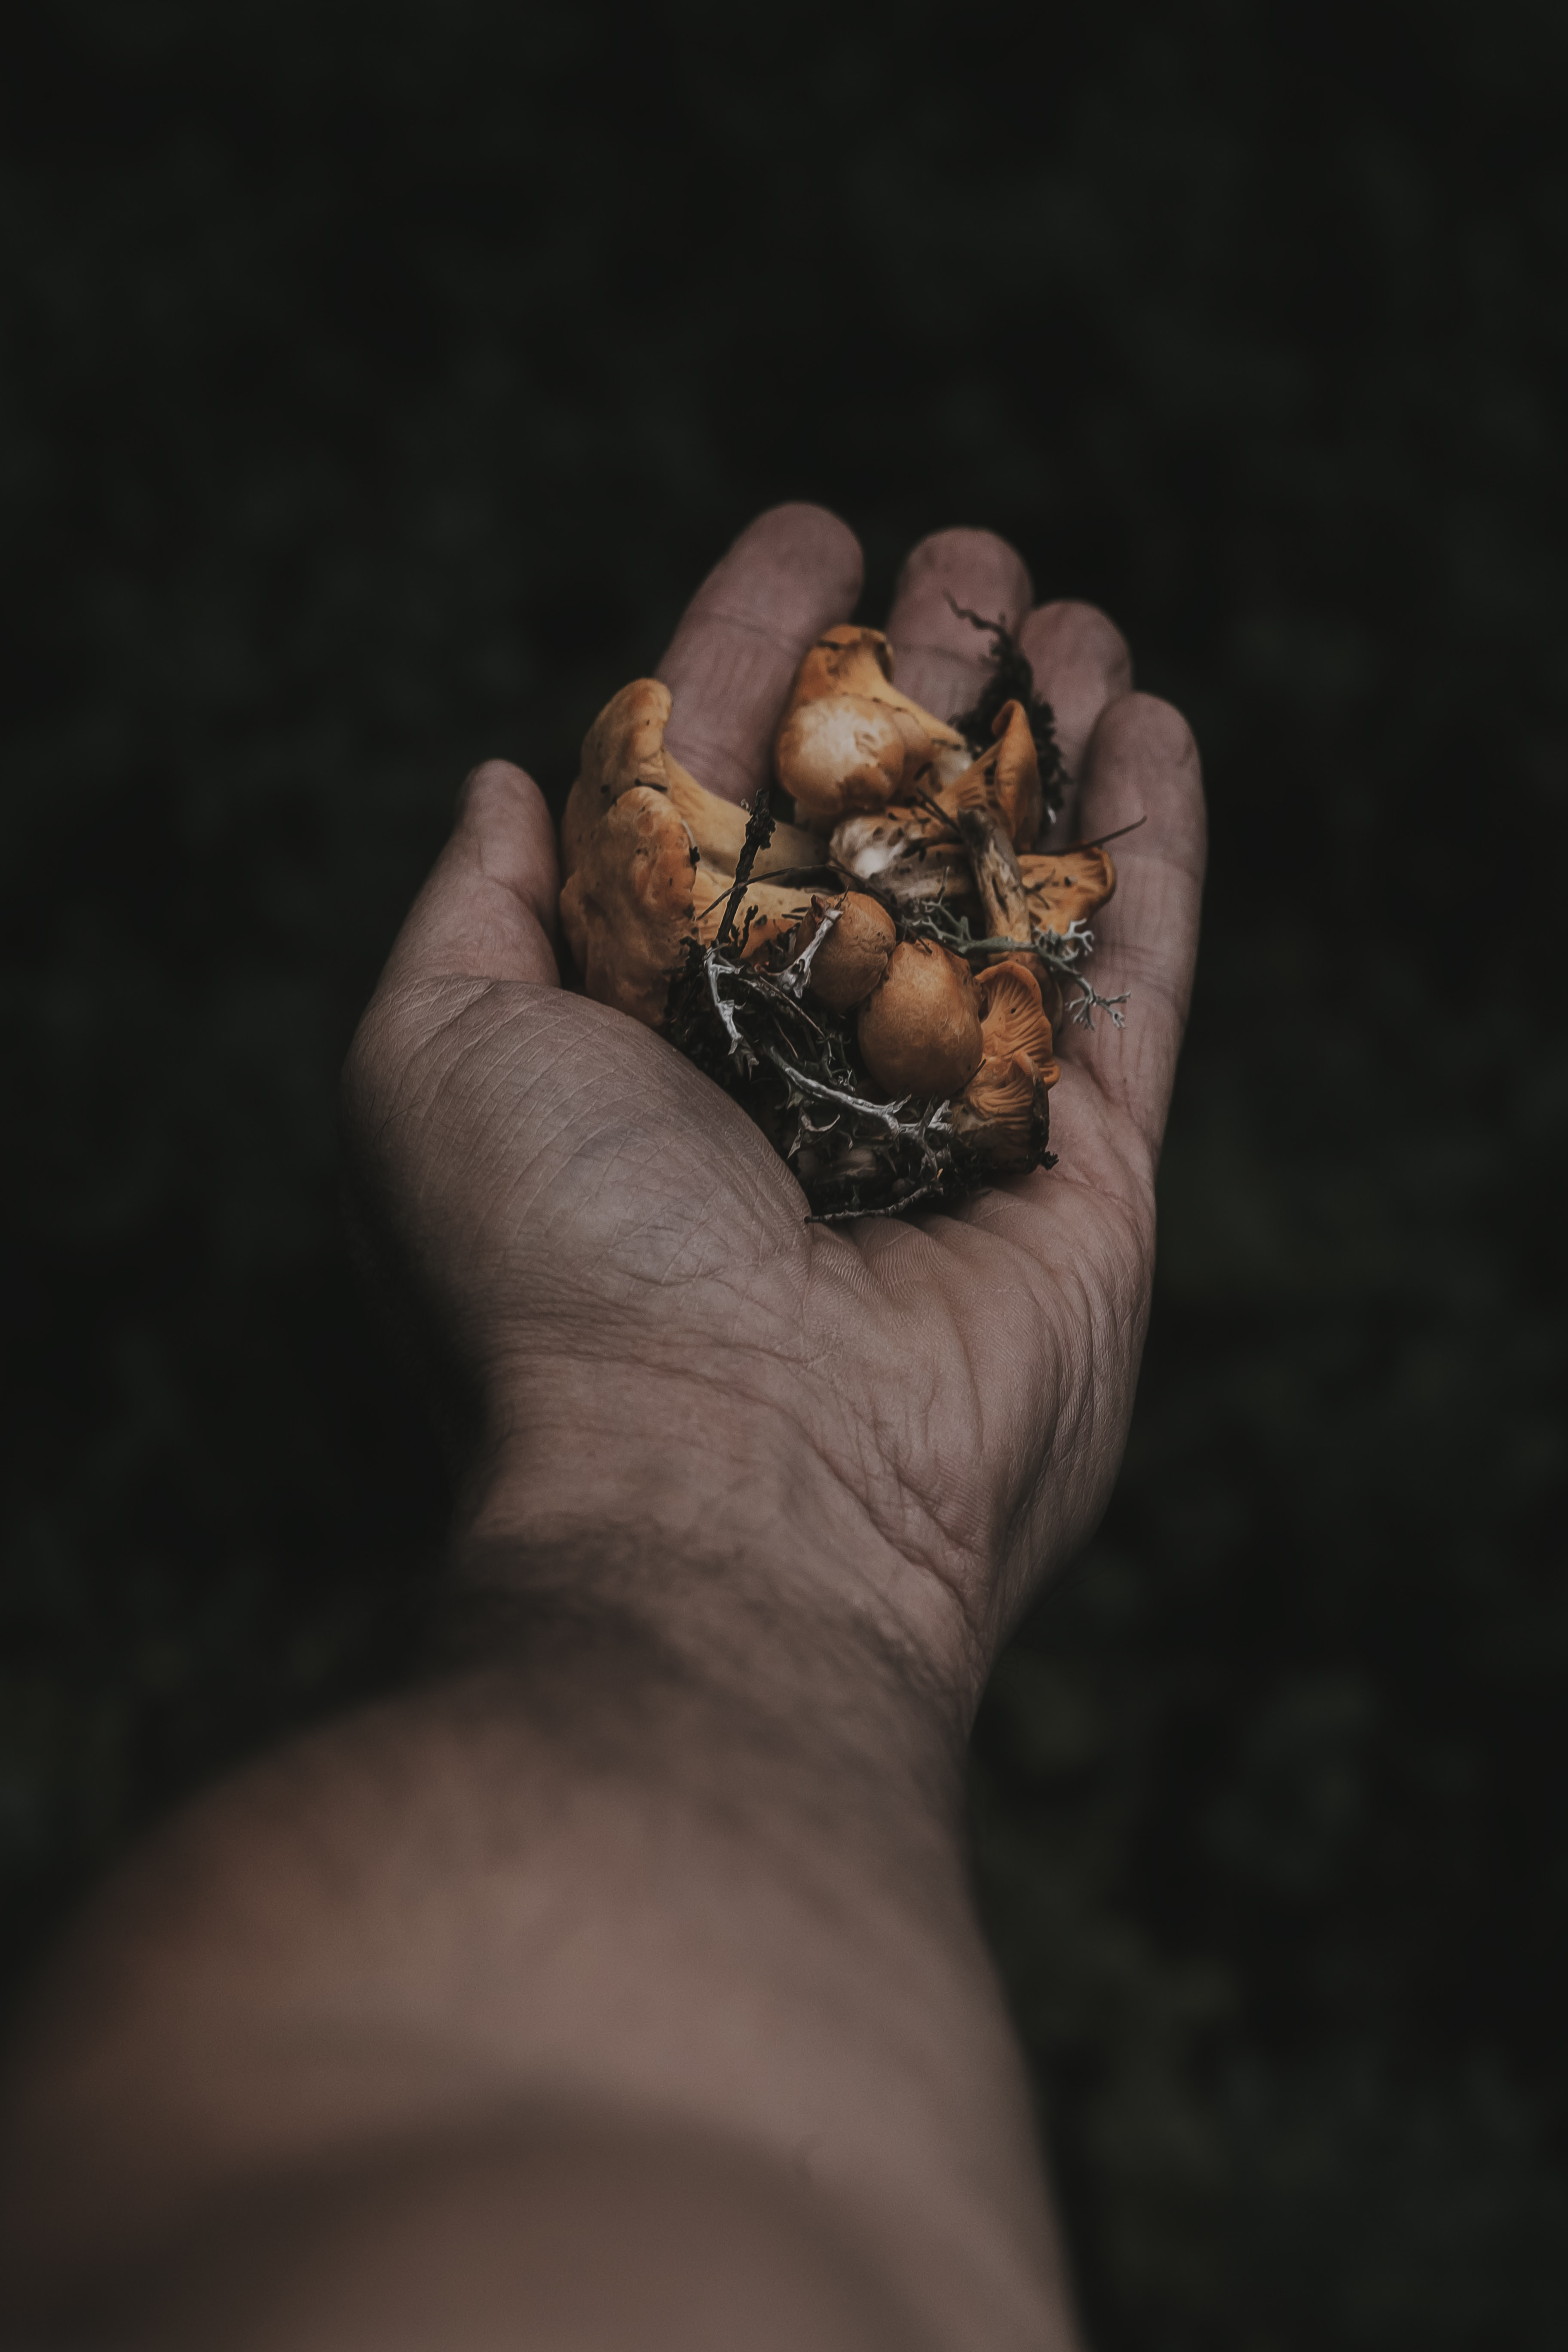 person holding mushrooms